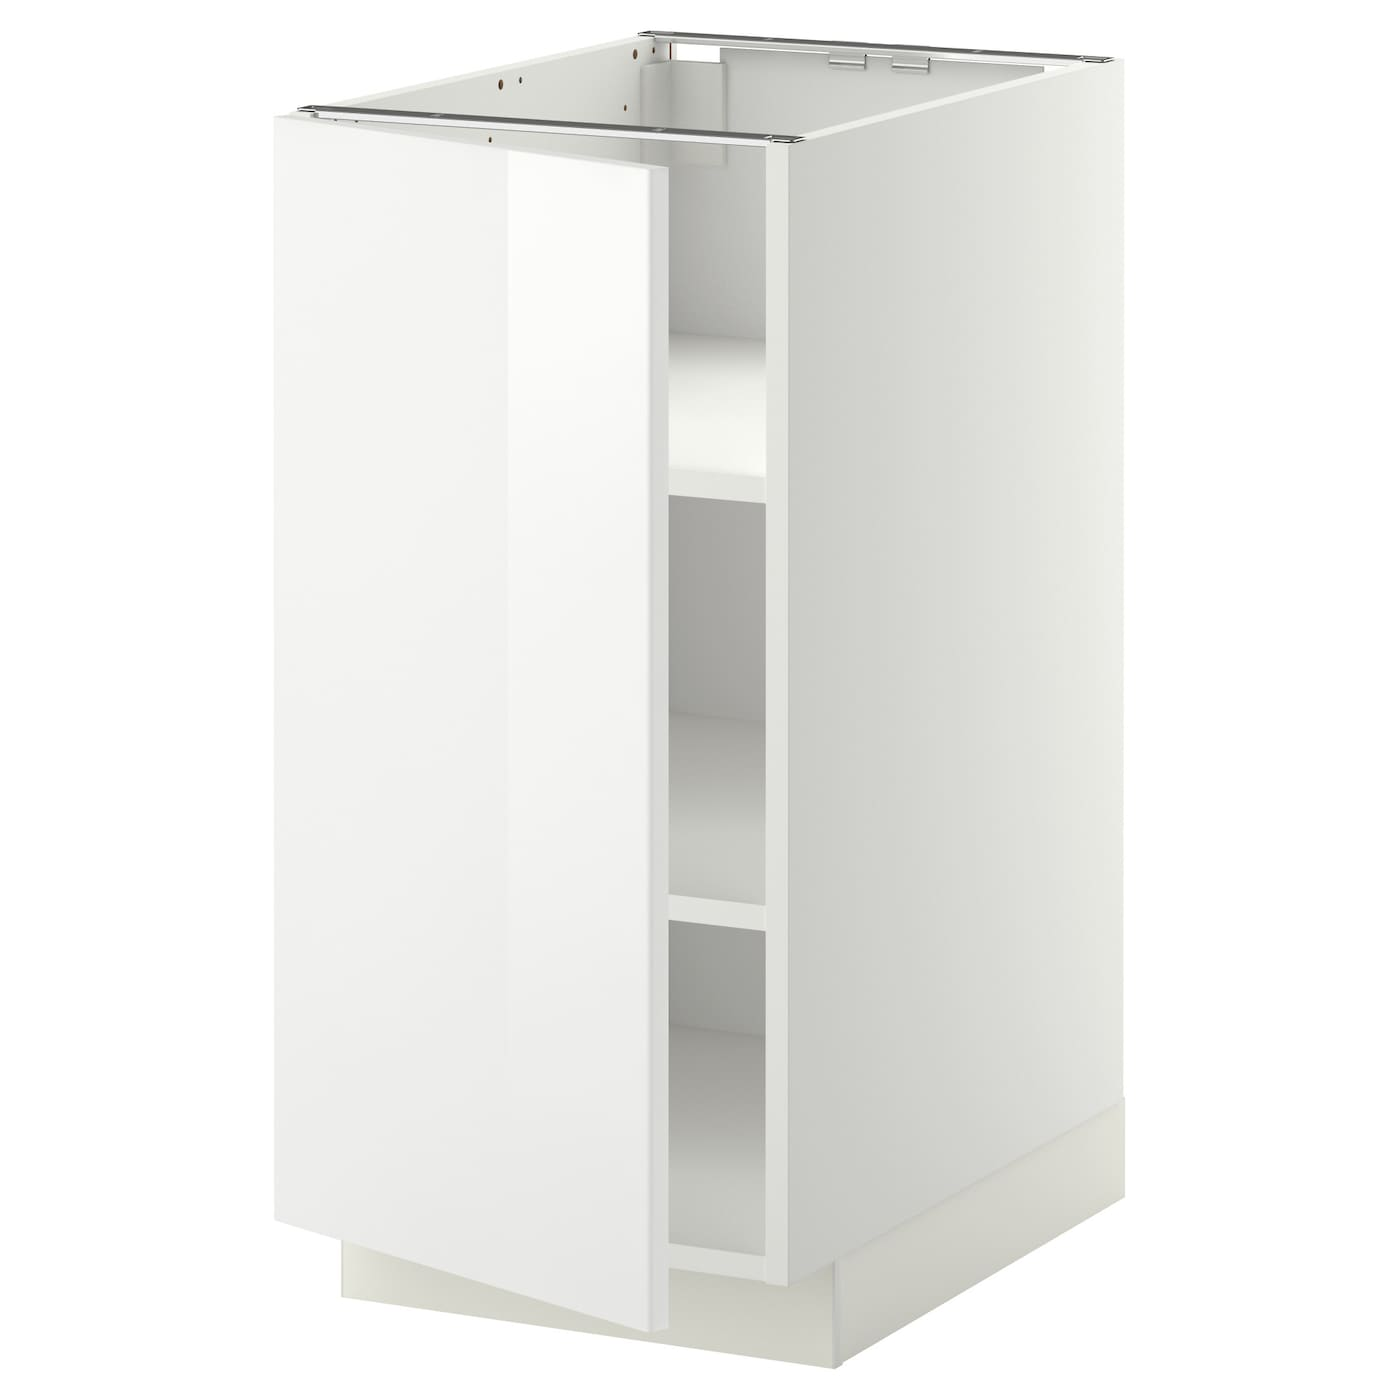 Metod base cabinet with shelves white ringhult white 40x60 for Off the shelf kitchen units